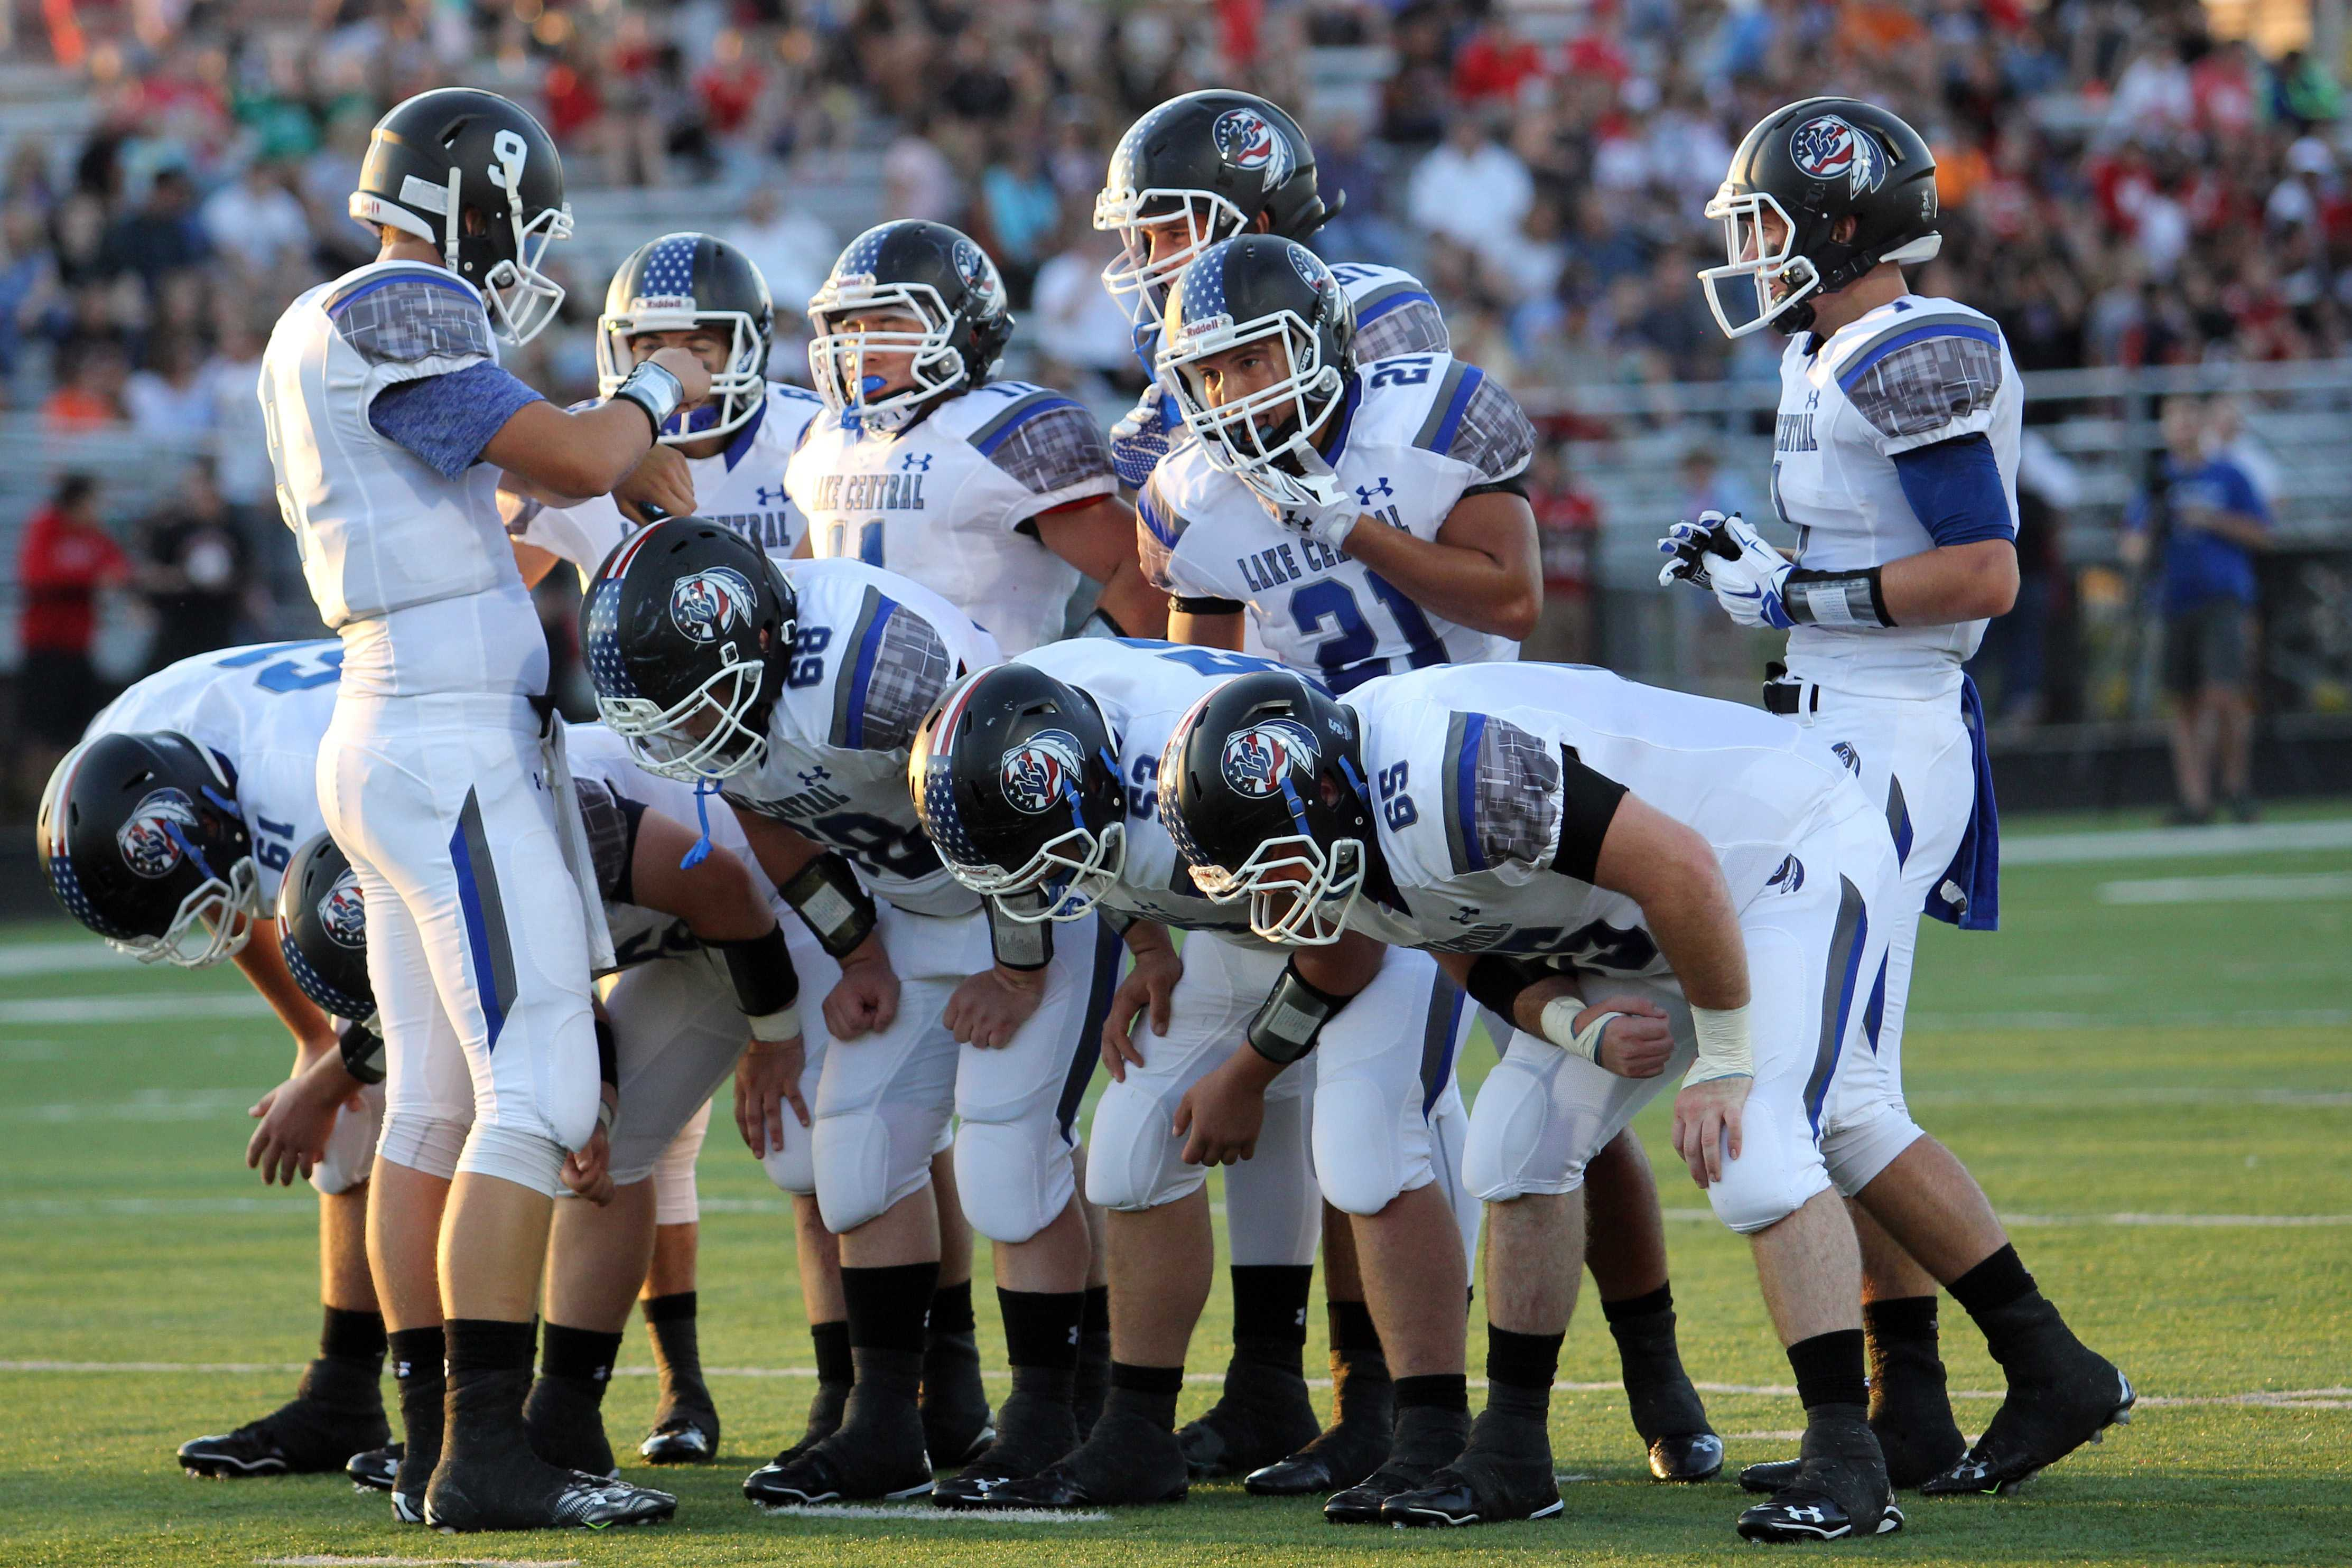 Ethan Darter (12) gives the play in the huddle. Darter ended the game with 19 of 25 for 206 yards.